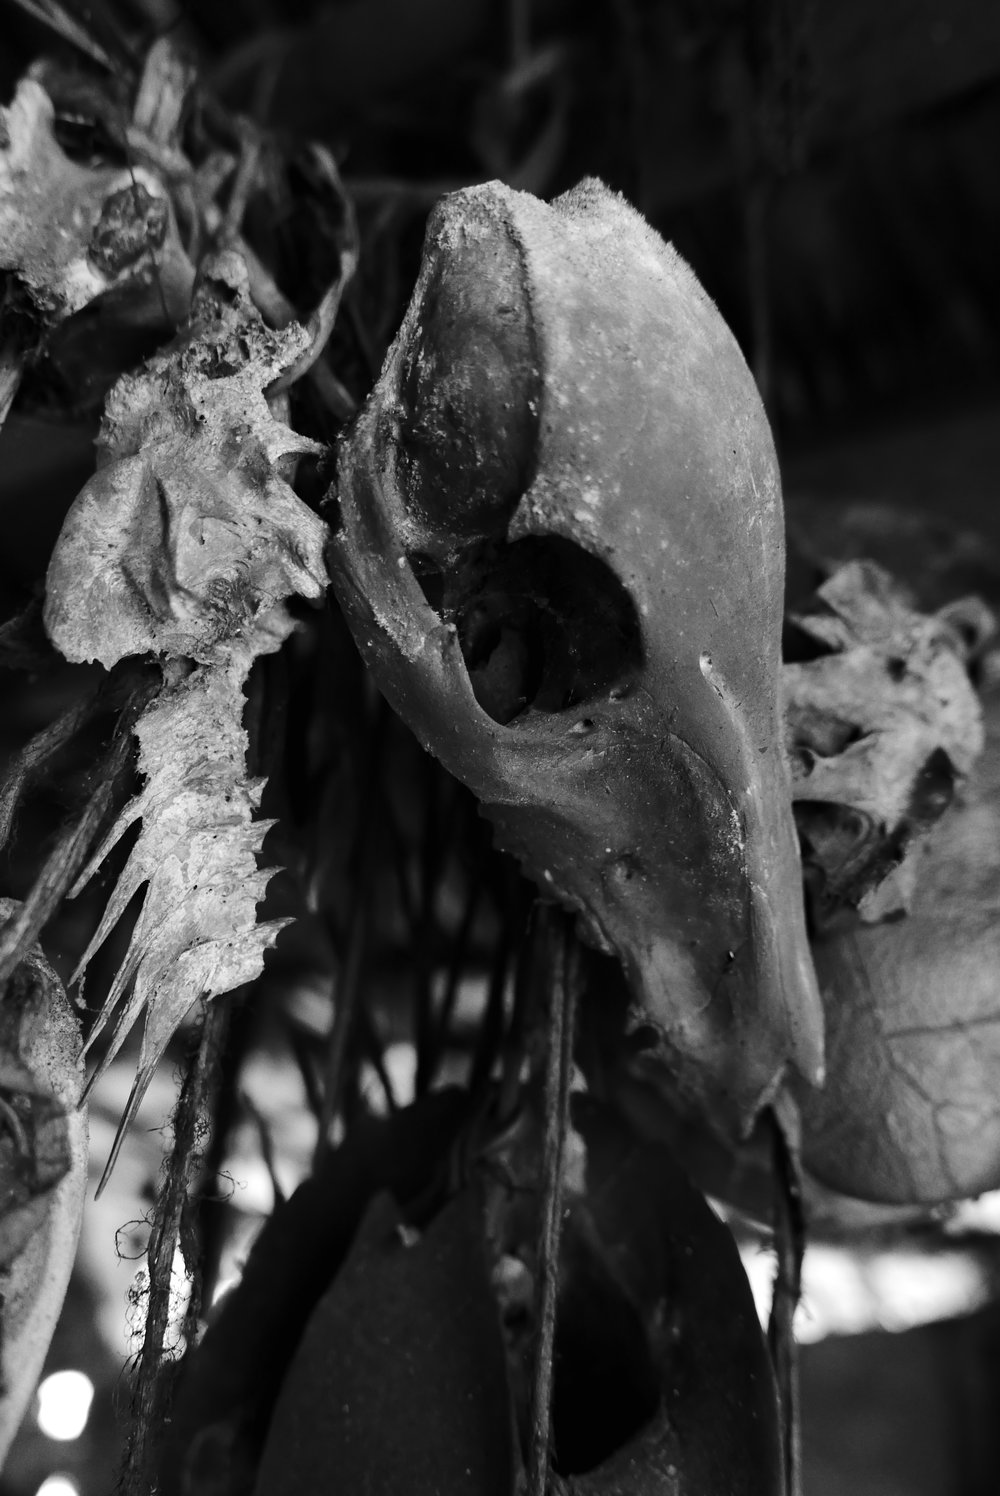 The Korowai traditionally hang skulls and bones from their past kills as ornamental decoration in the rafters of their treehouse homes